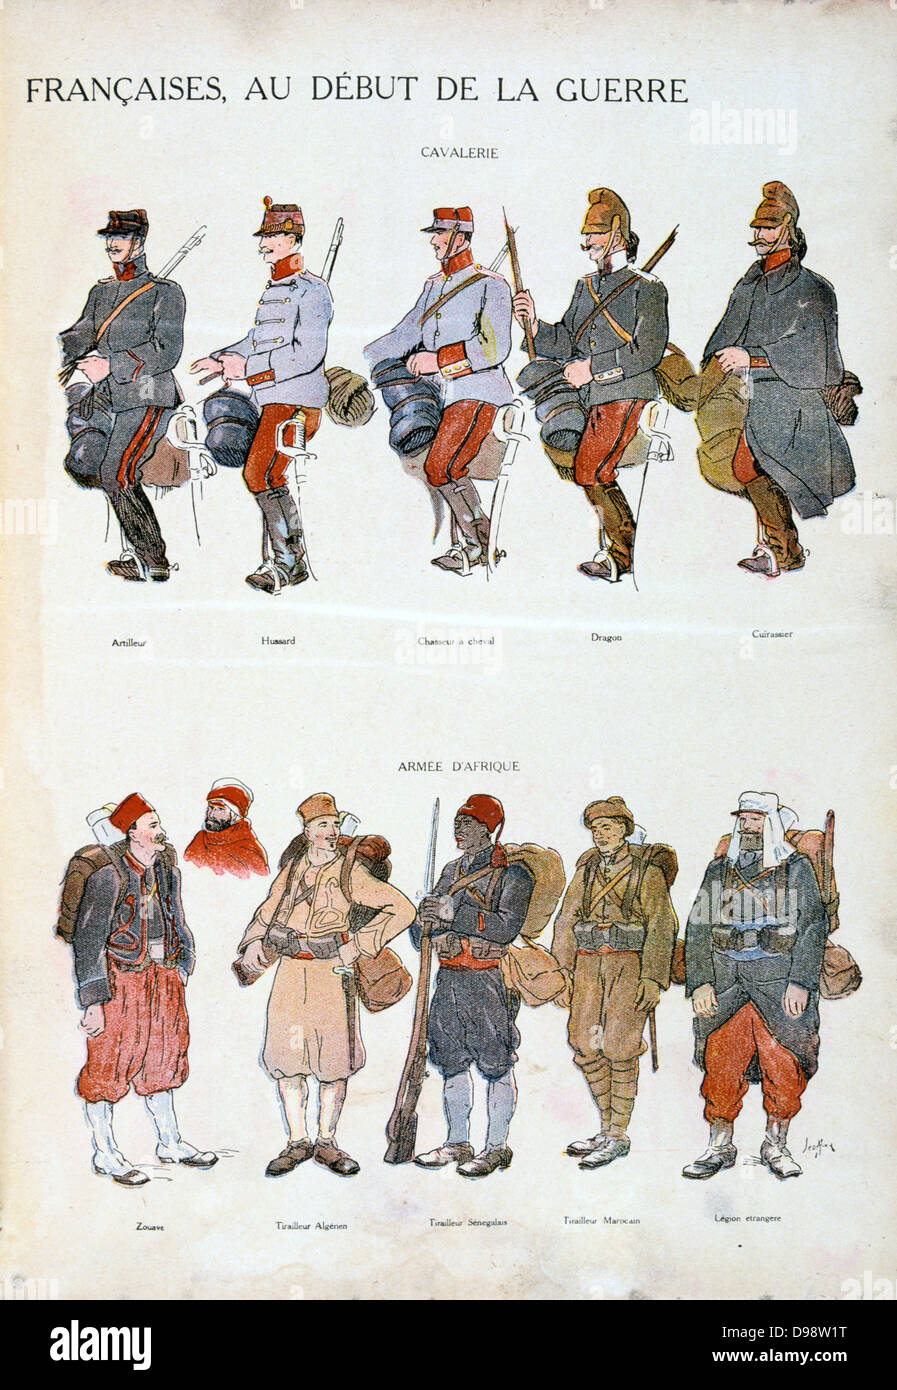 French military uniforms in World War I, 1914-1918. Top: Cavalry. Bottom: African forces. Coloured print - Stock Image